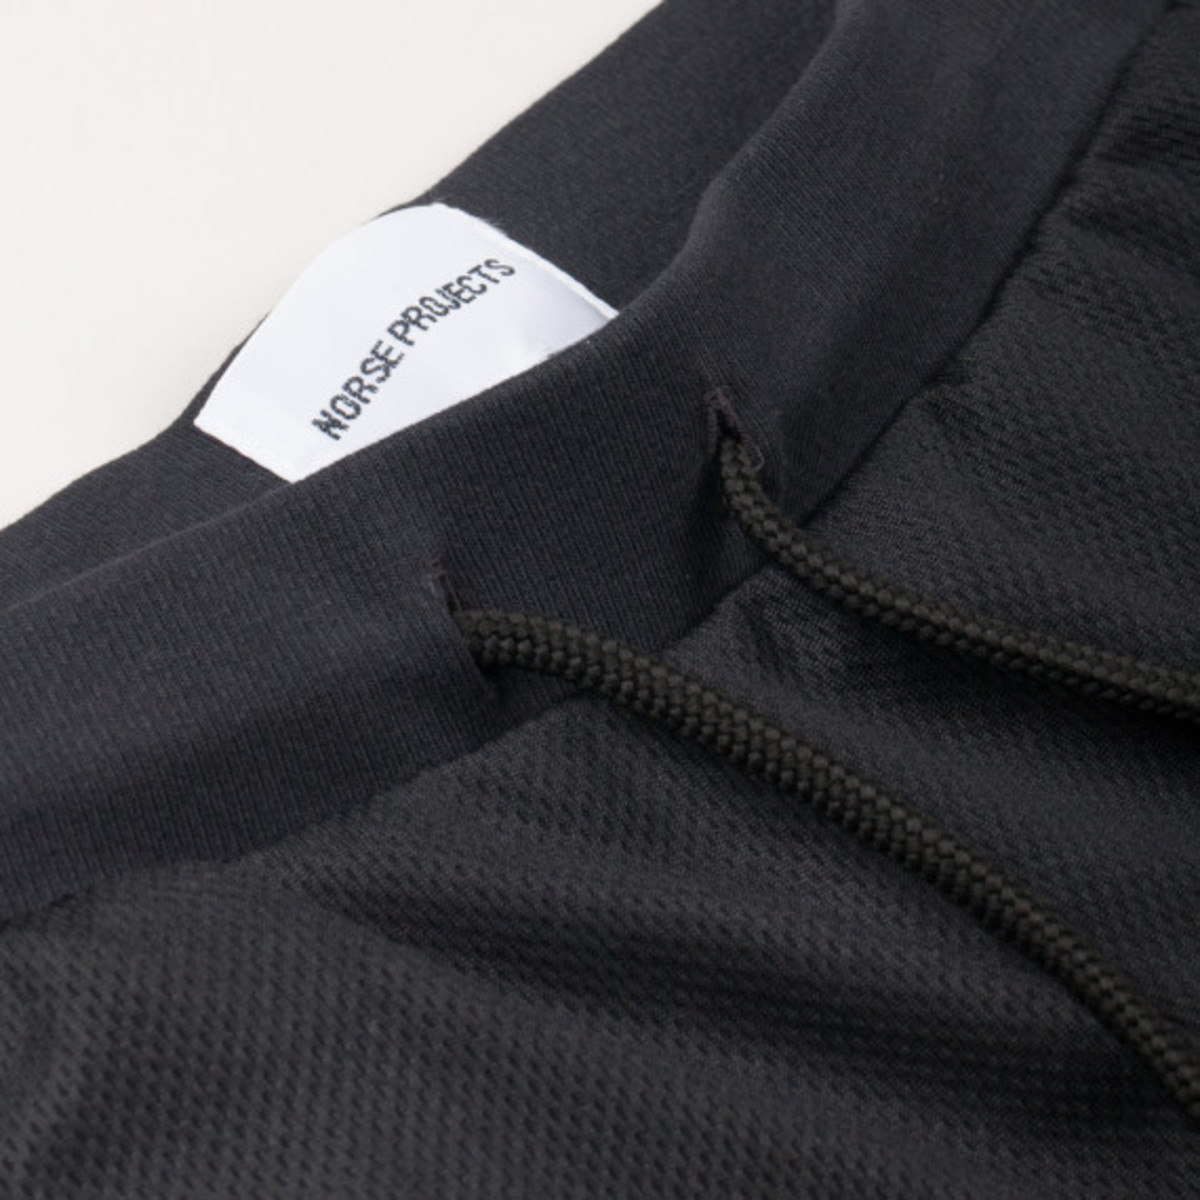 norse-projects-technical-garments-spring-2014-i